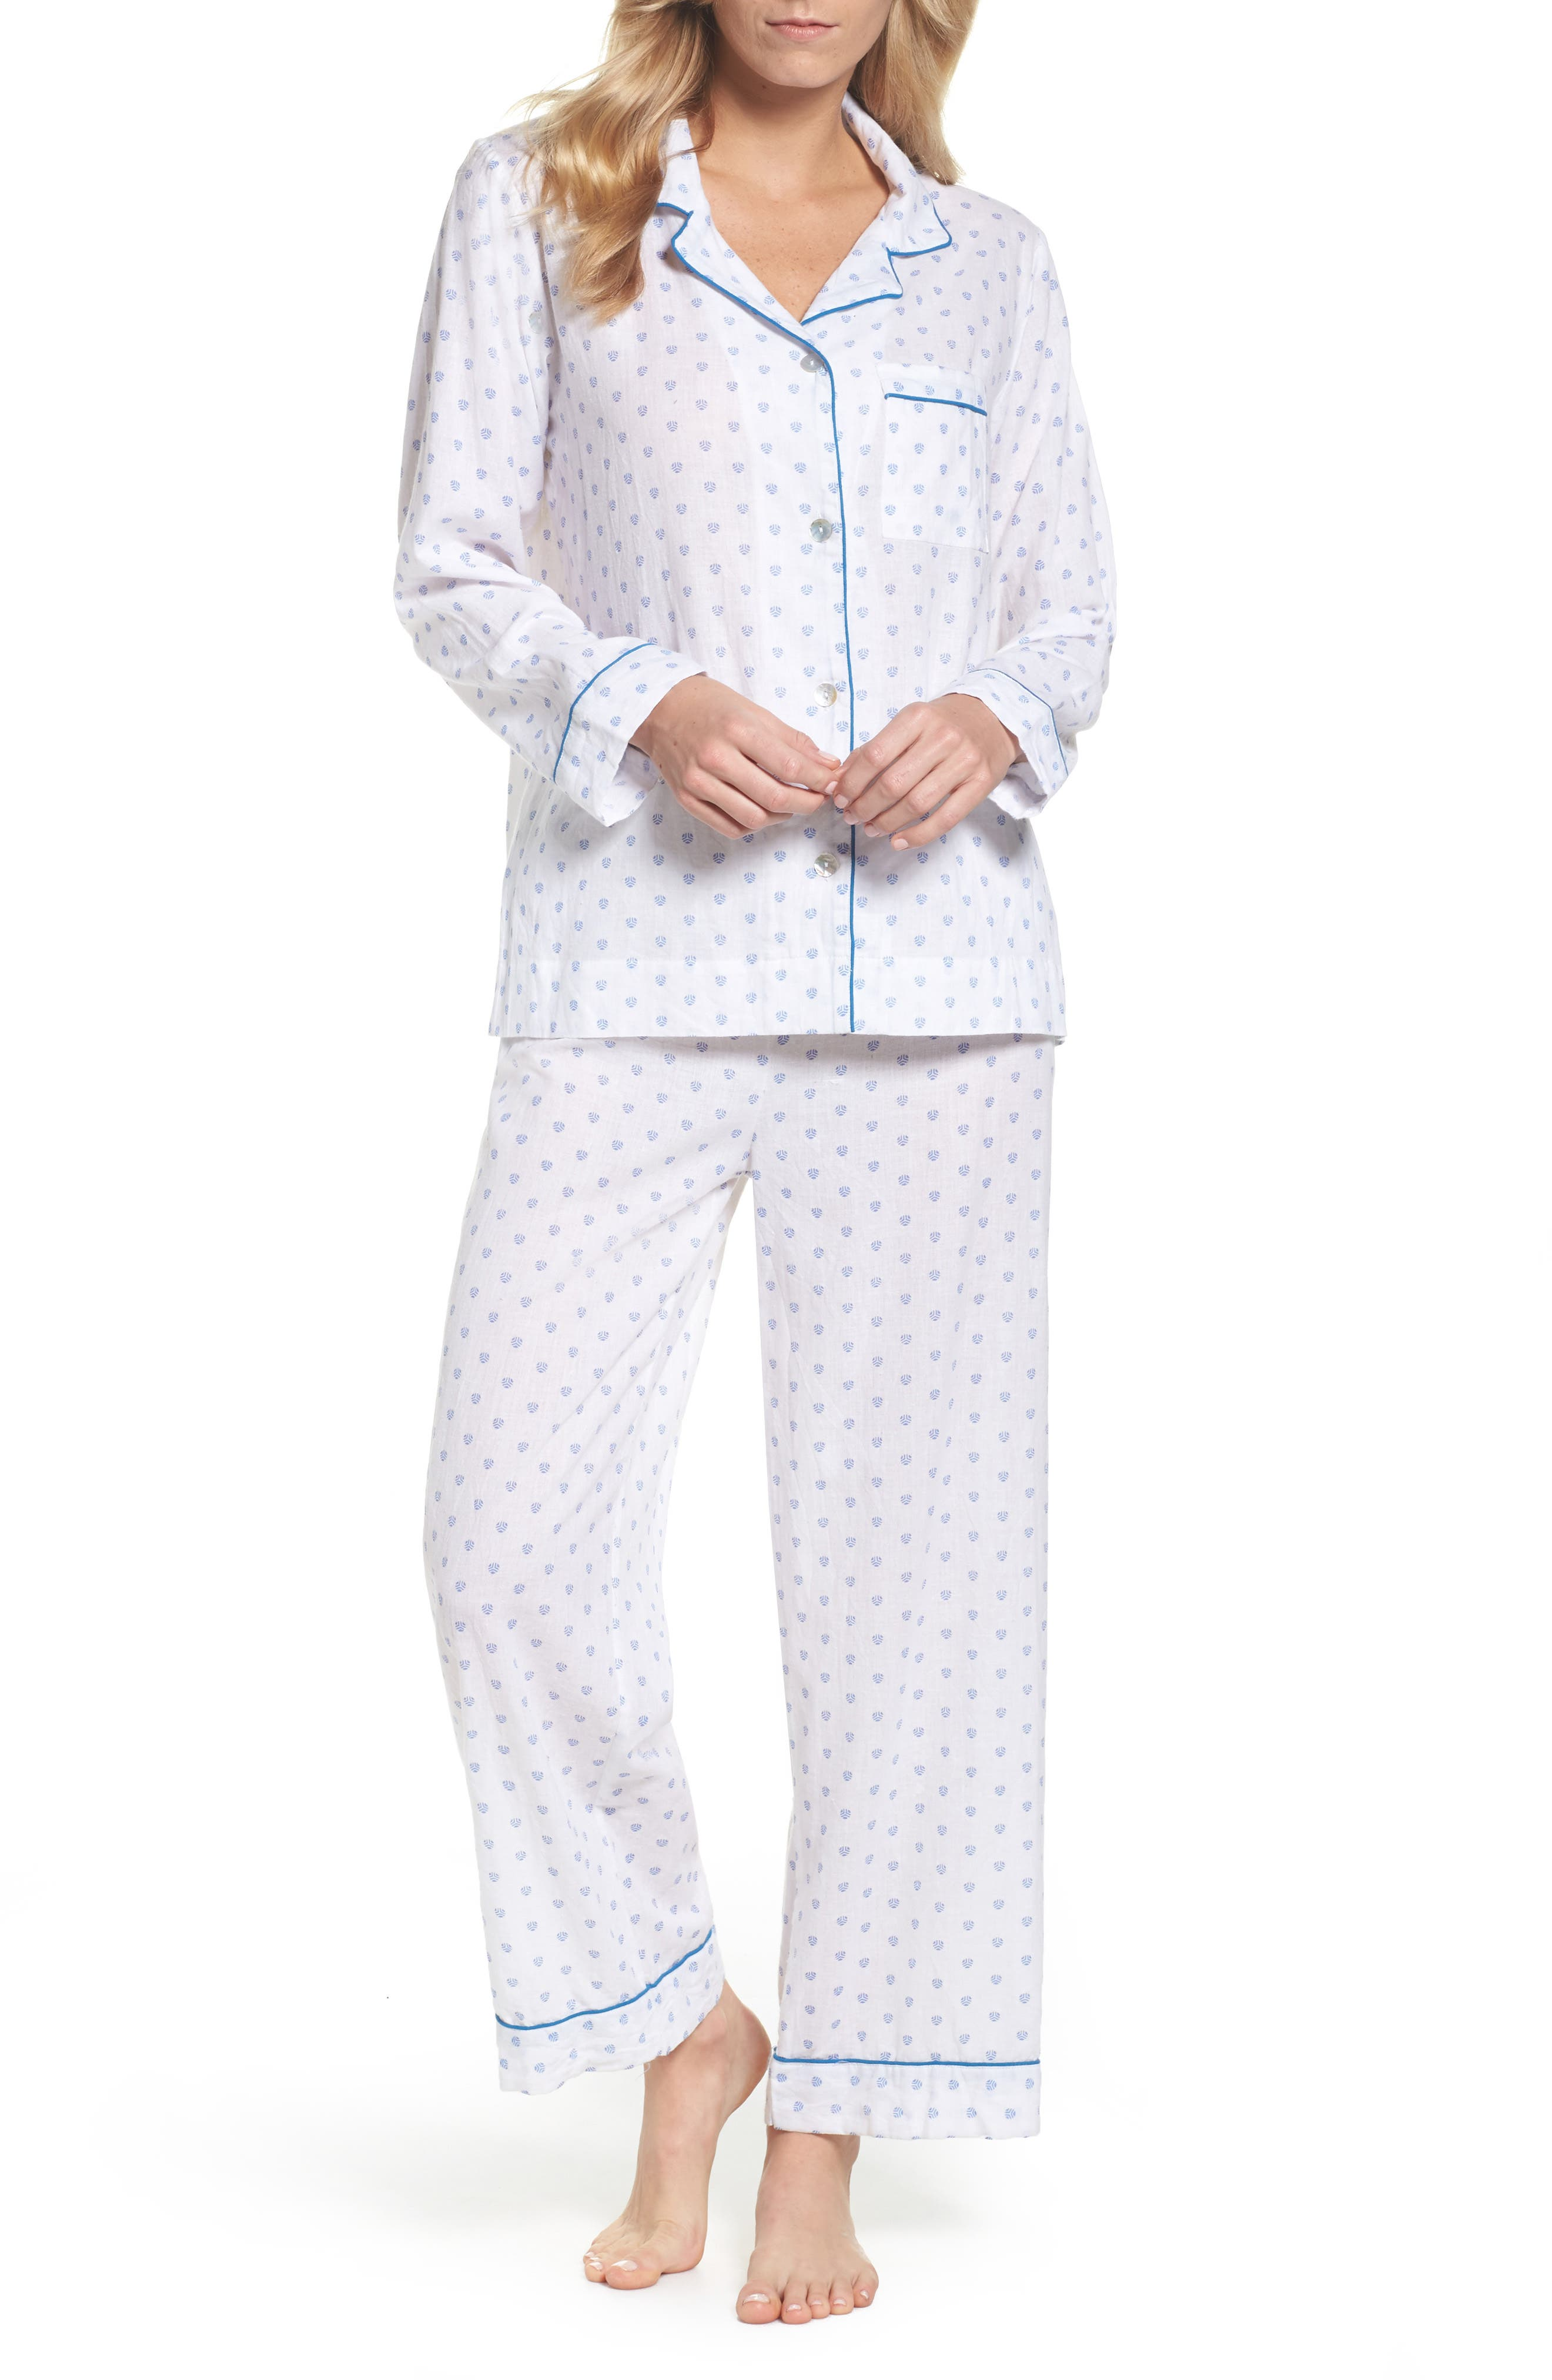 Washed Cotton Pajamas,                         Main,                         color, 100